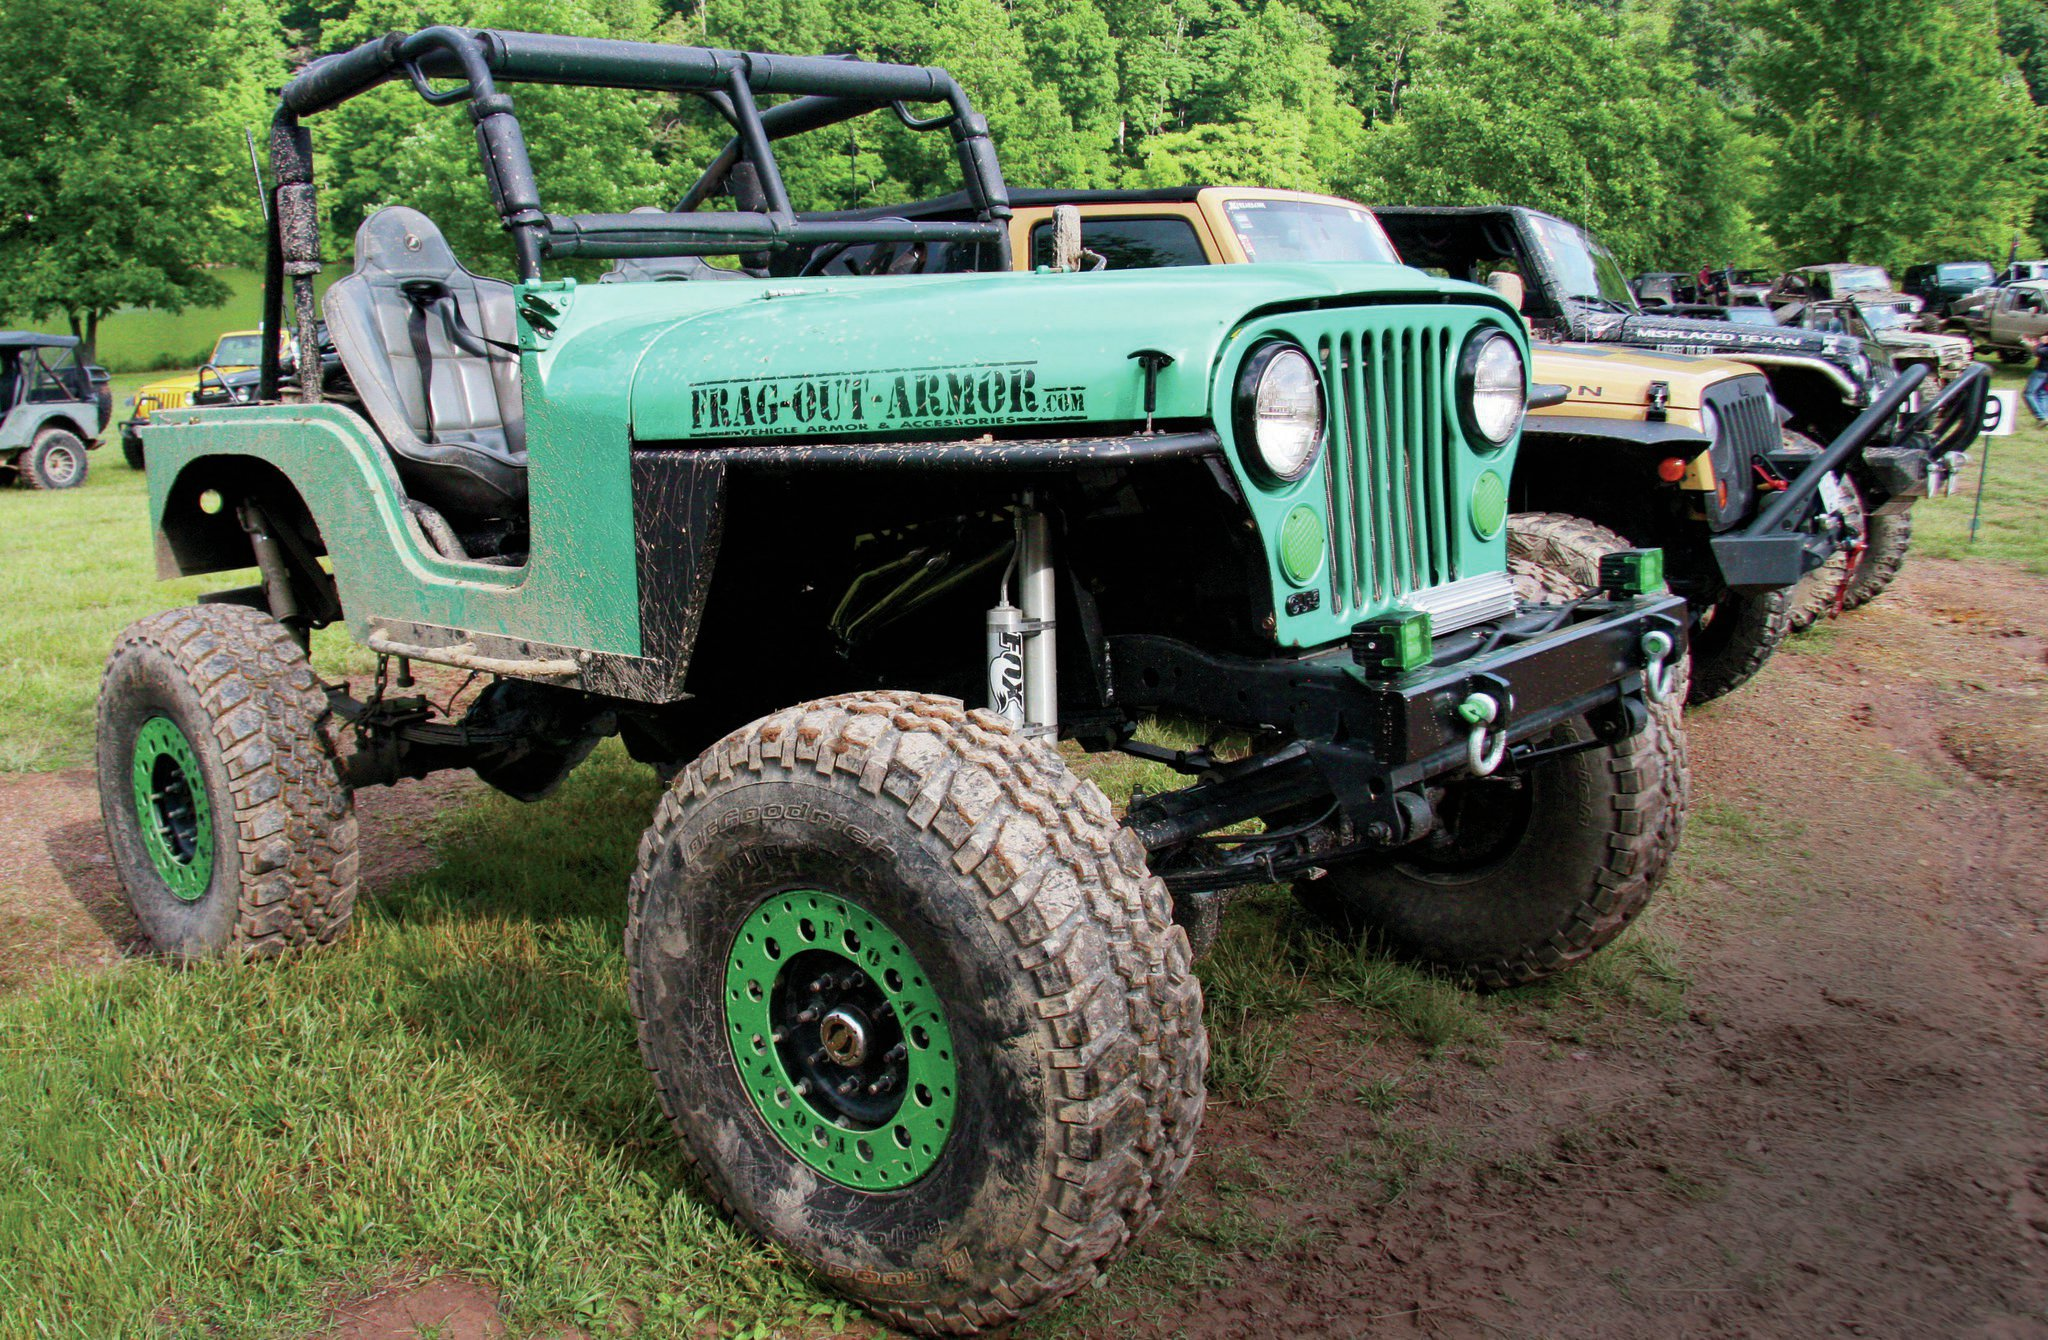 The spring-over Leprechaun from Frag-Out-Armor in Chester, Virginia, was in attendance. It's a nicely built CJ-5 that's clean and well fortified. These guys are also avid supporters of 4 Wheel To Heal.